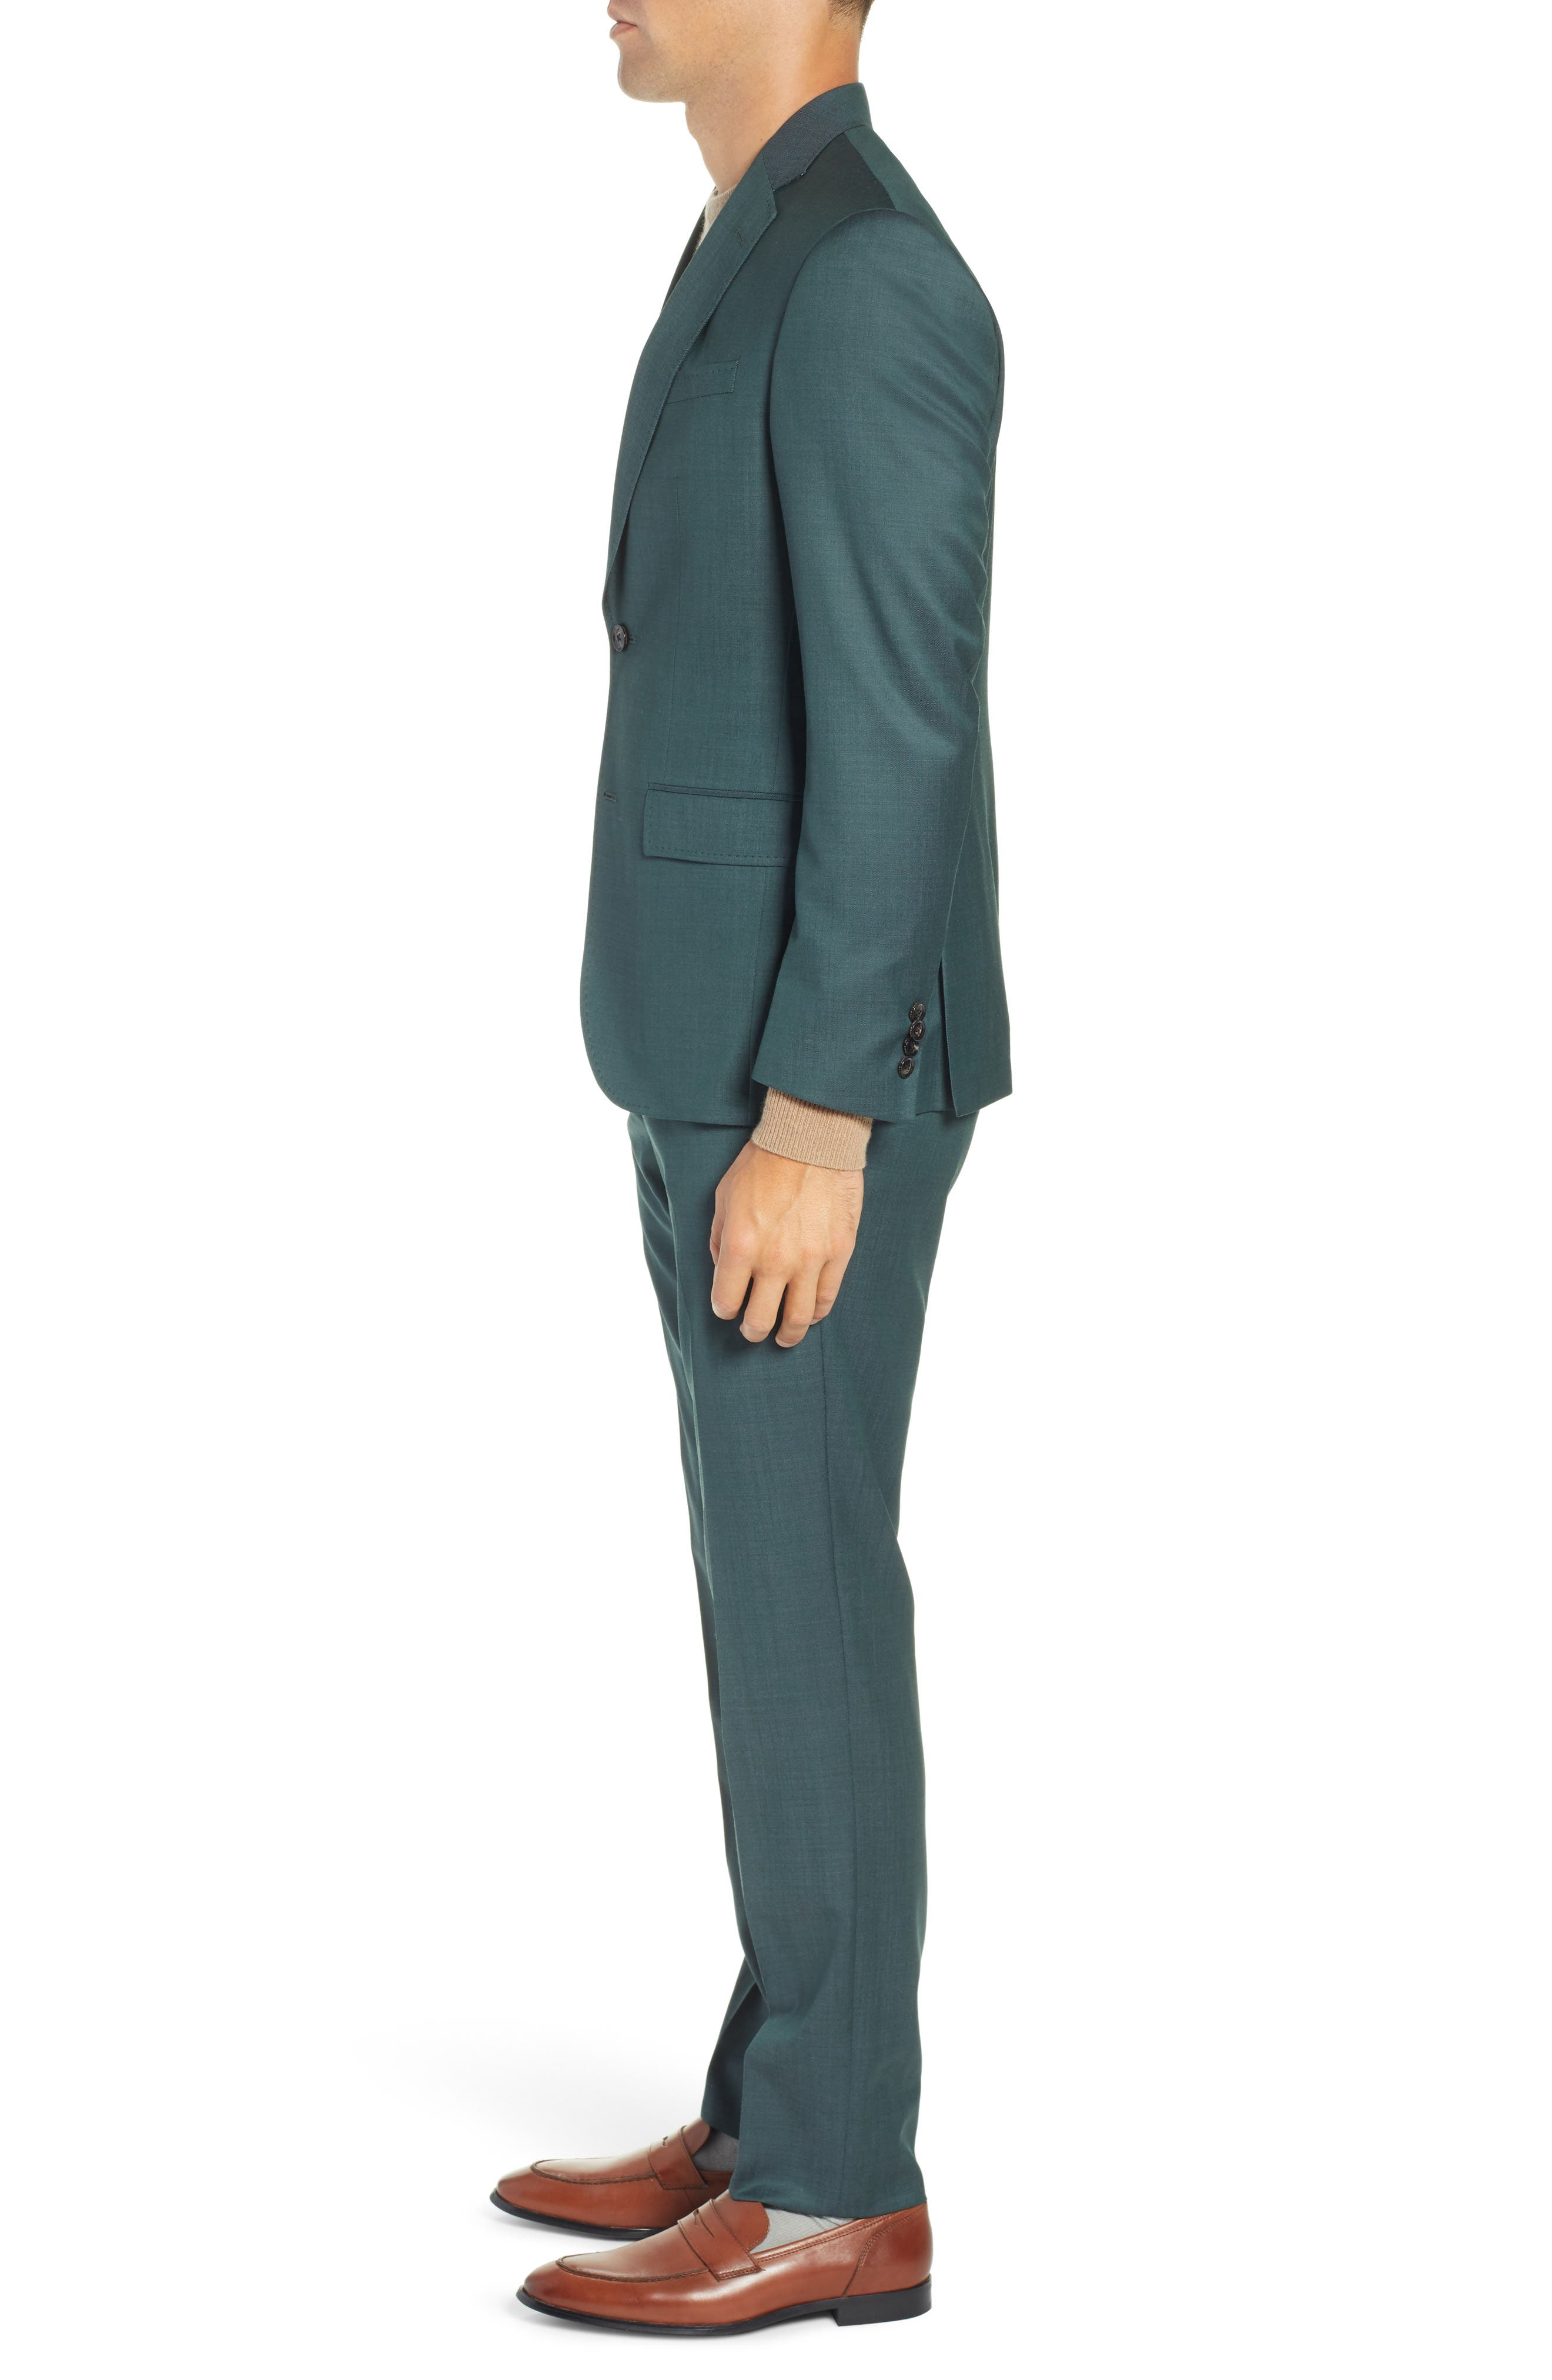 TED BAKER LONDON, Roger Slim Fit Solid Wool Suit, Alternate thumbnail 3, color, GREEN